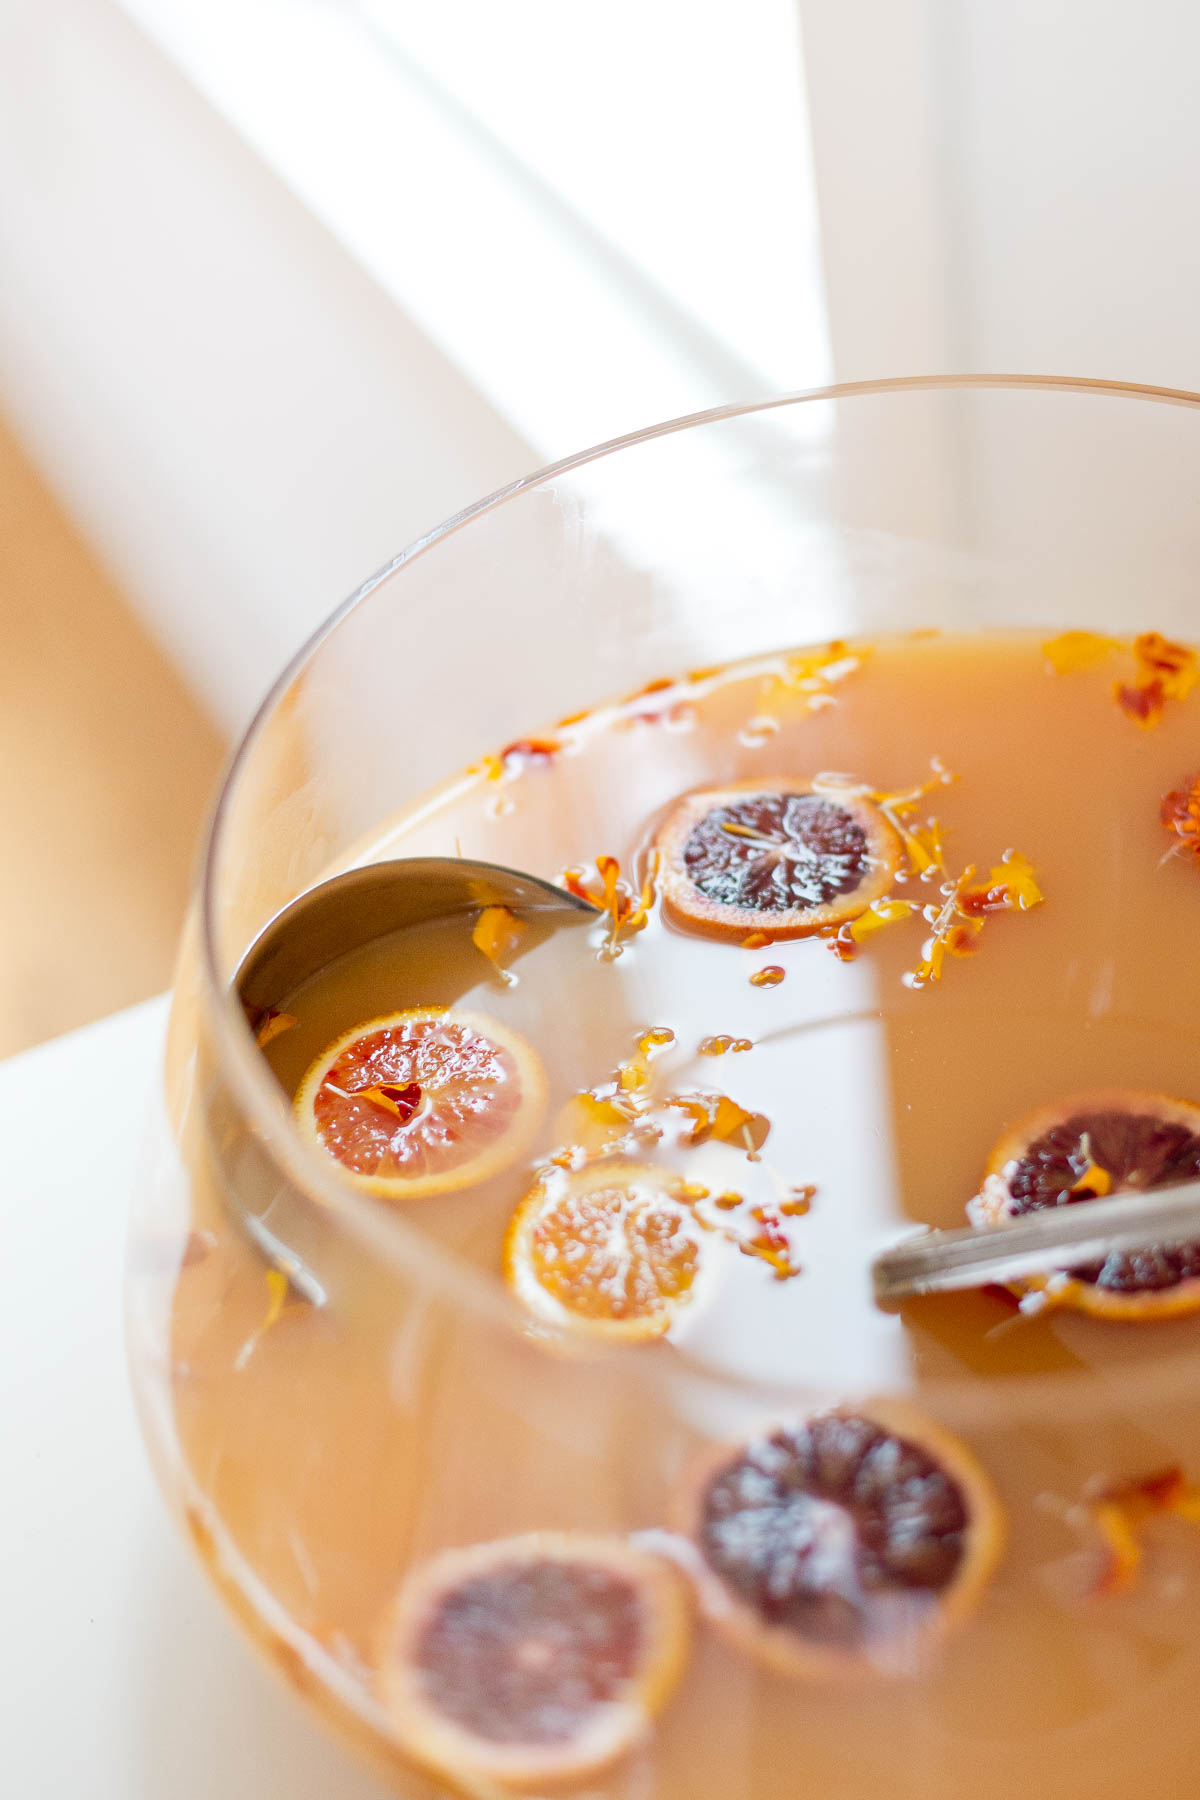 Holiday punch with blood orange and satsuma orange slices and edible flowers